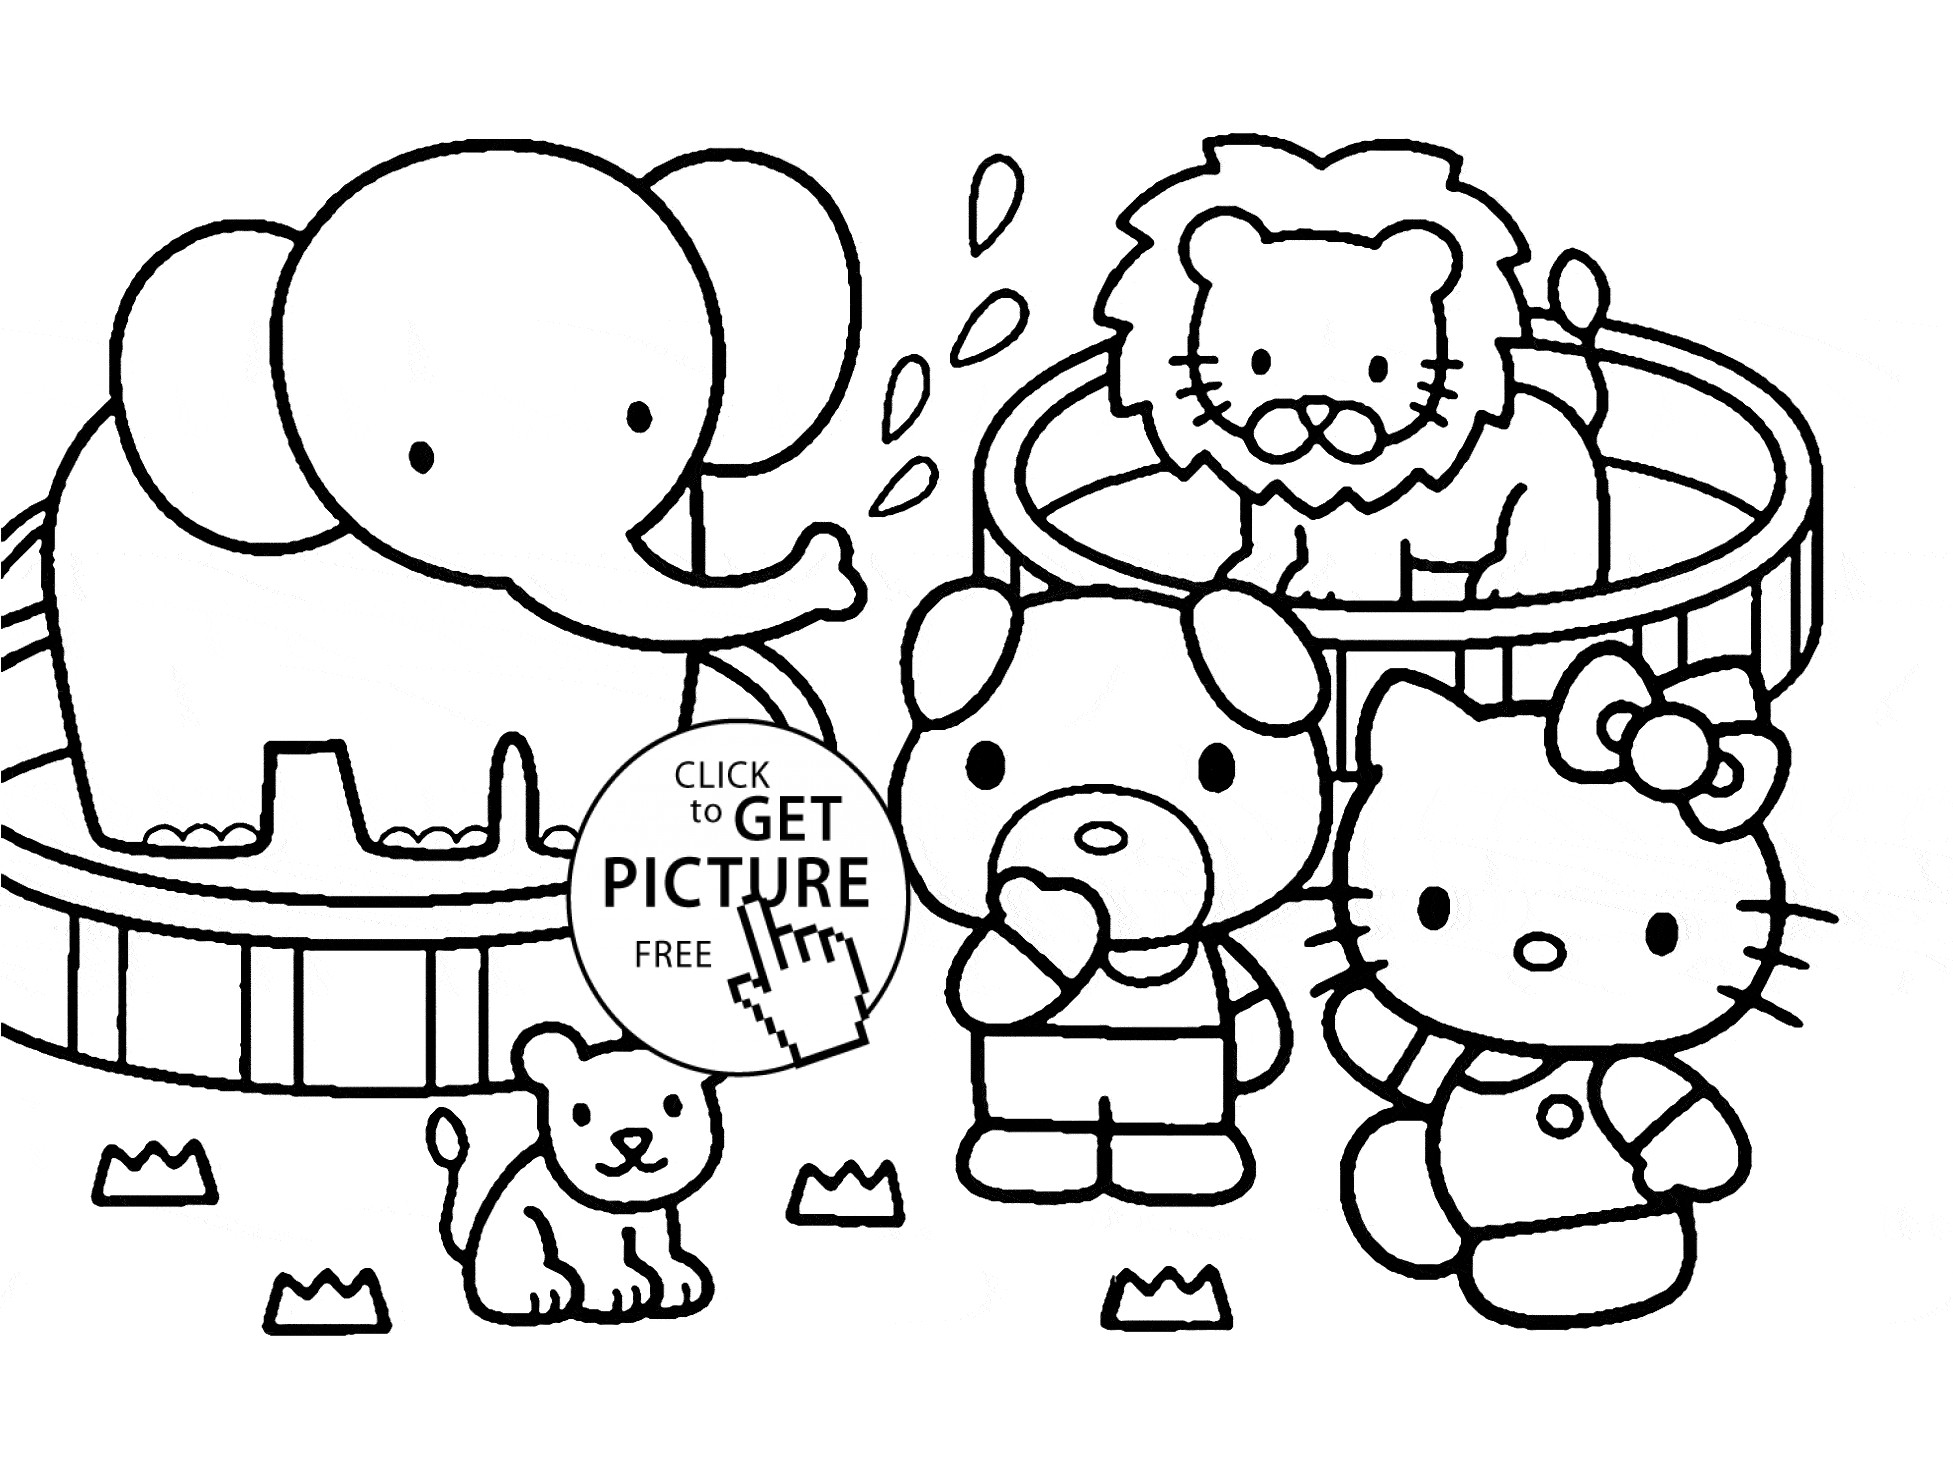 cute zoo coloring pages cute cartoon animal set zoo coloring and drawing page coloring cute zoo pages